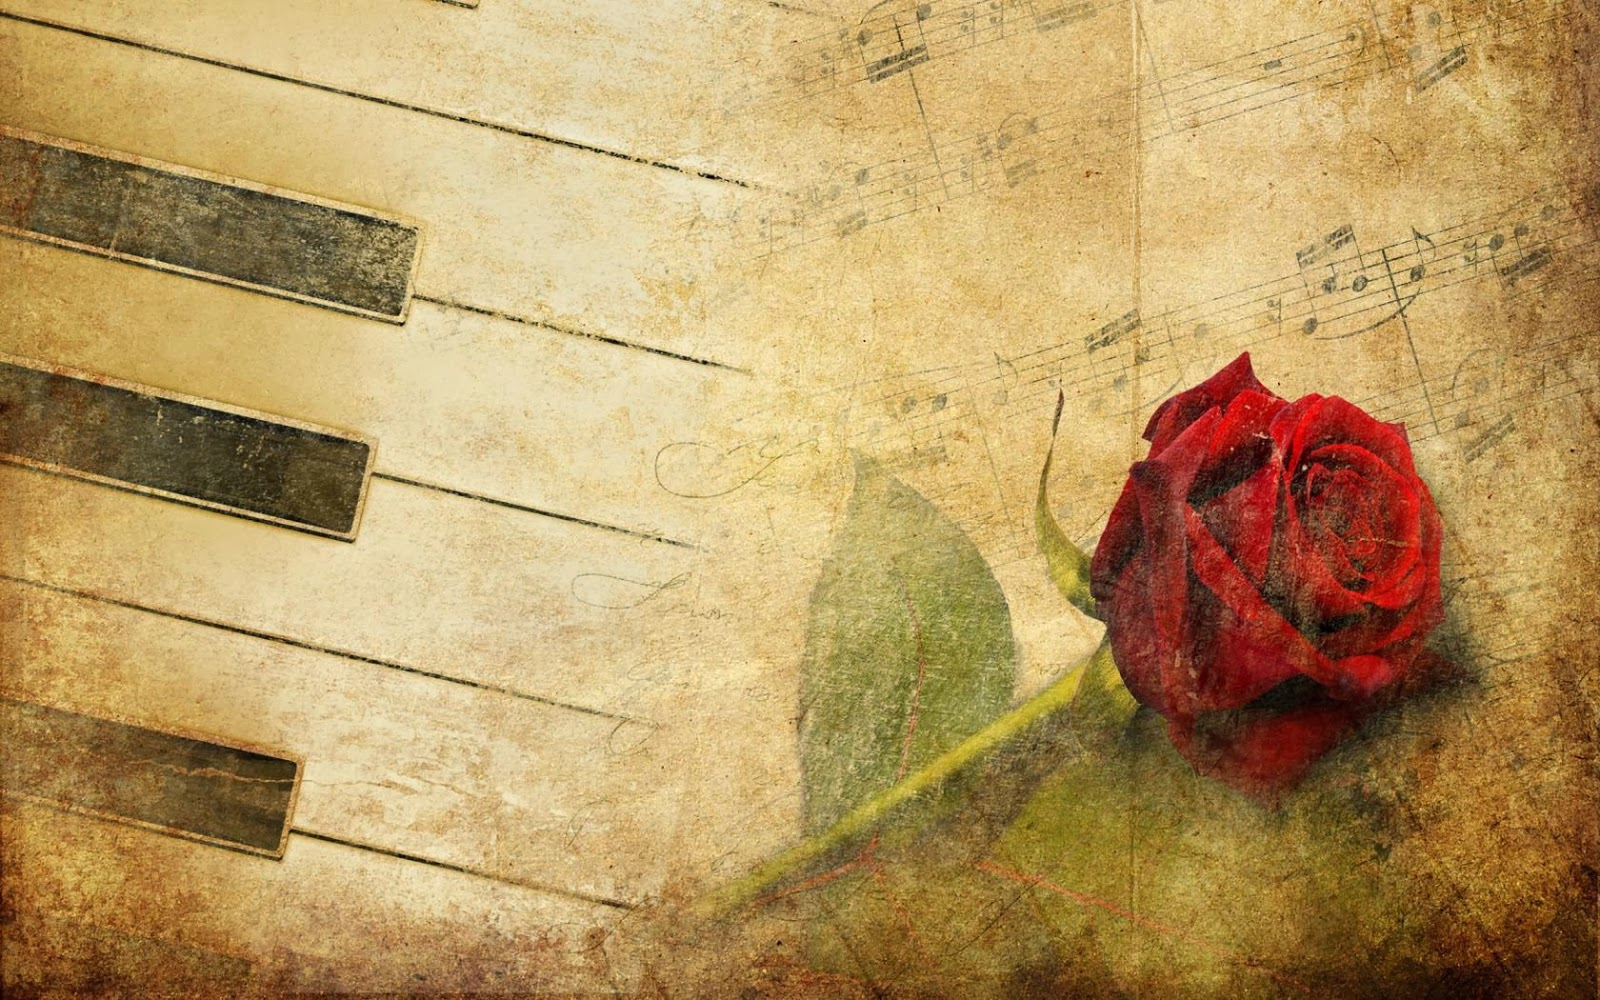 Maroon-Rose-with-piano-keyboard-keys-art-Template-image-HD-download.jpg